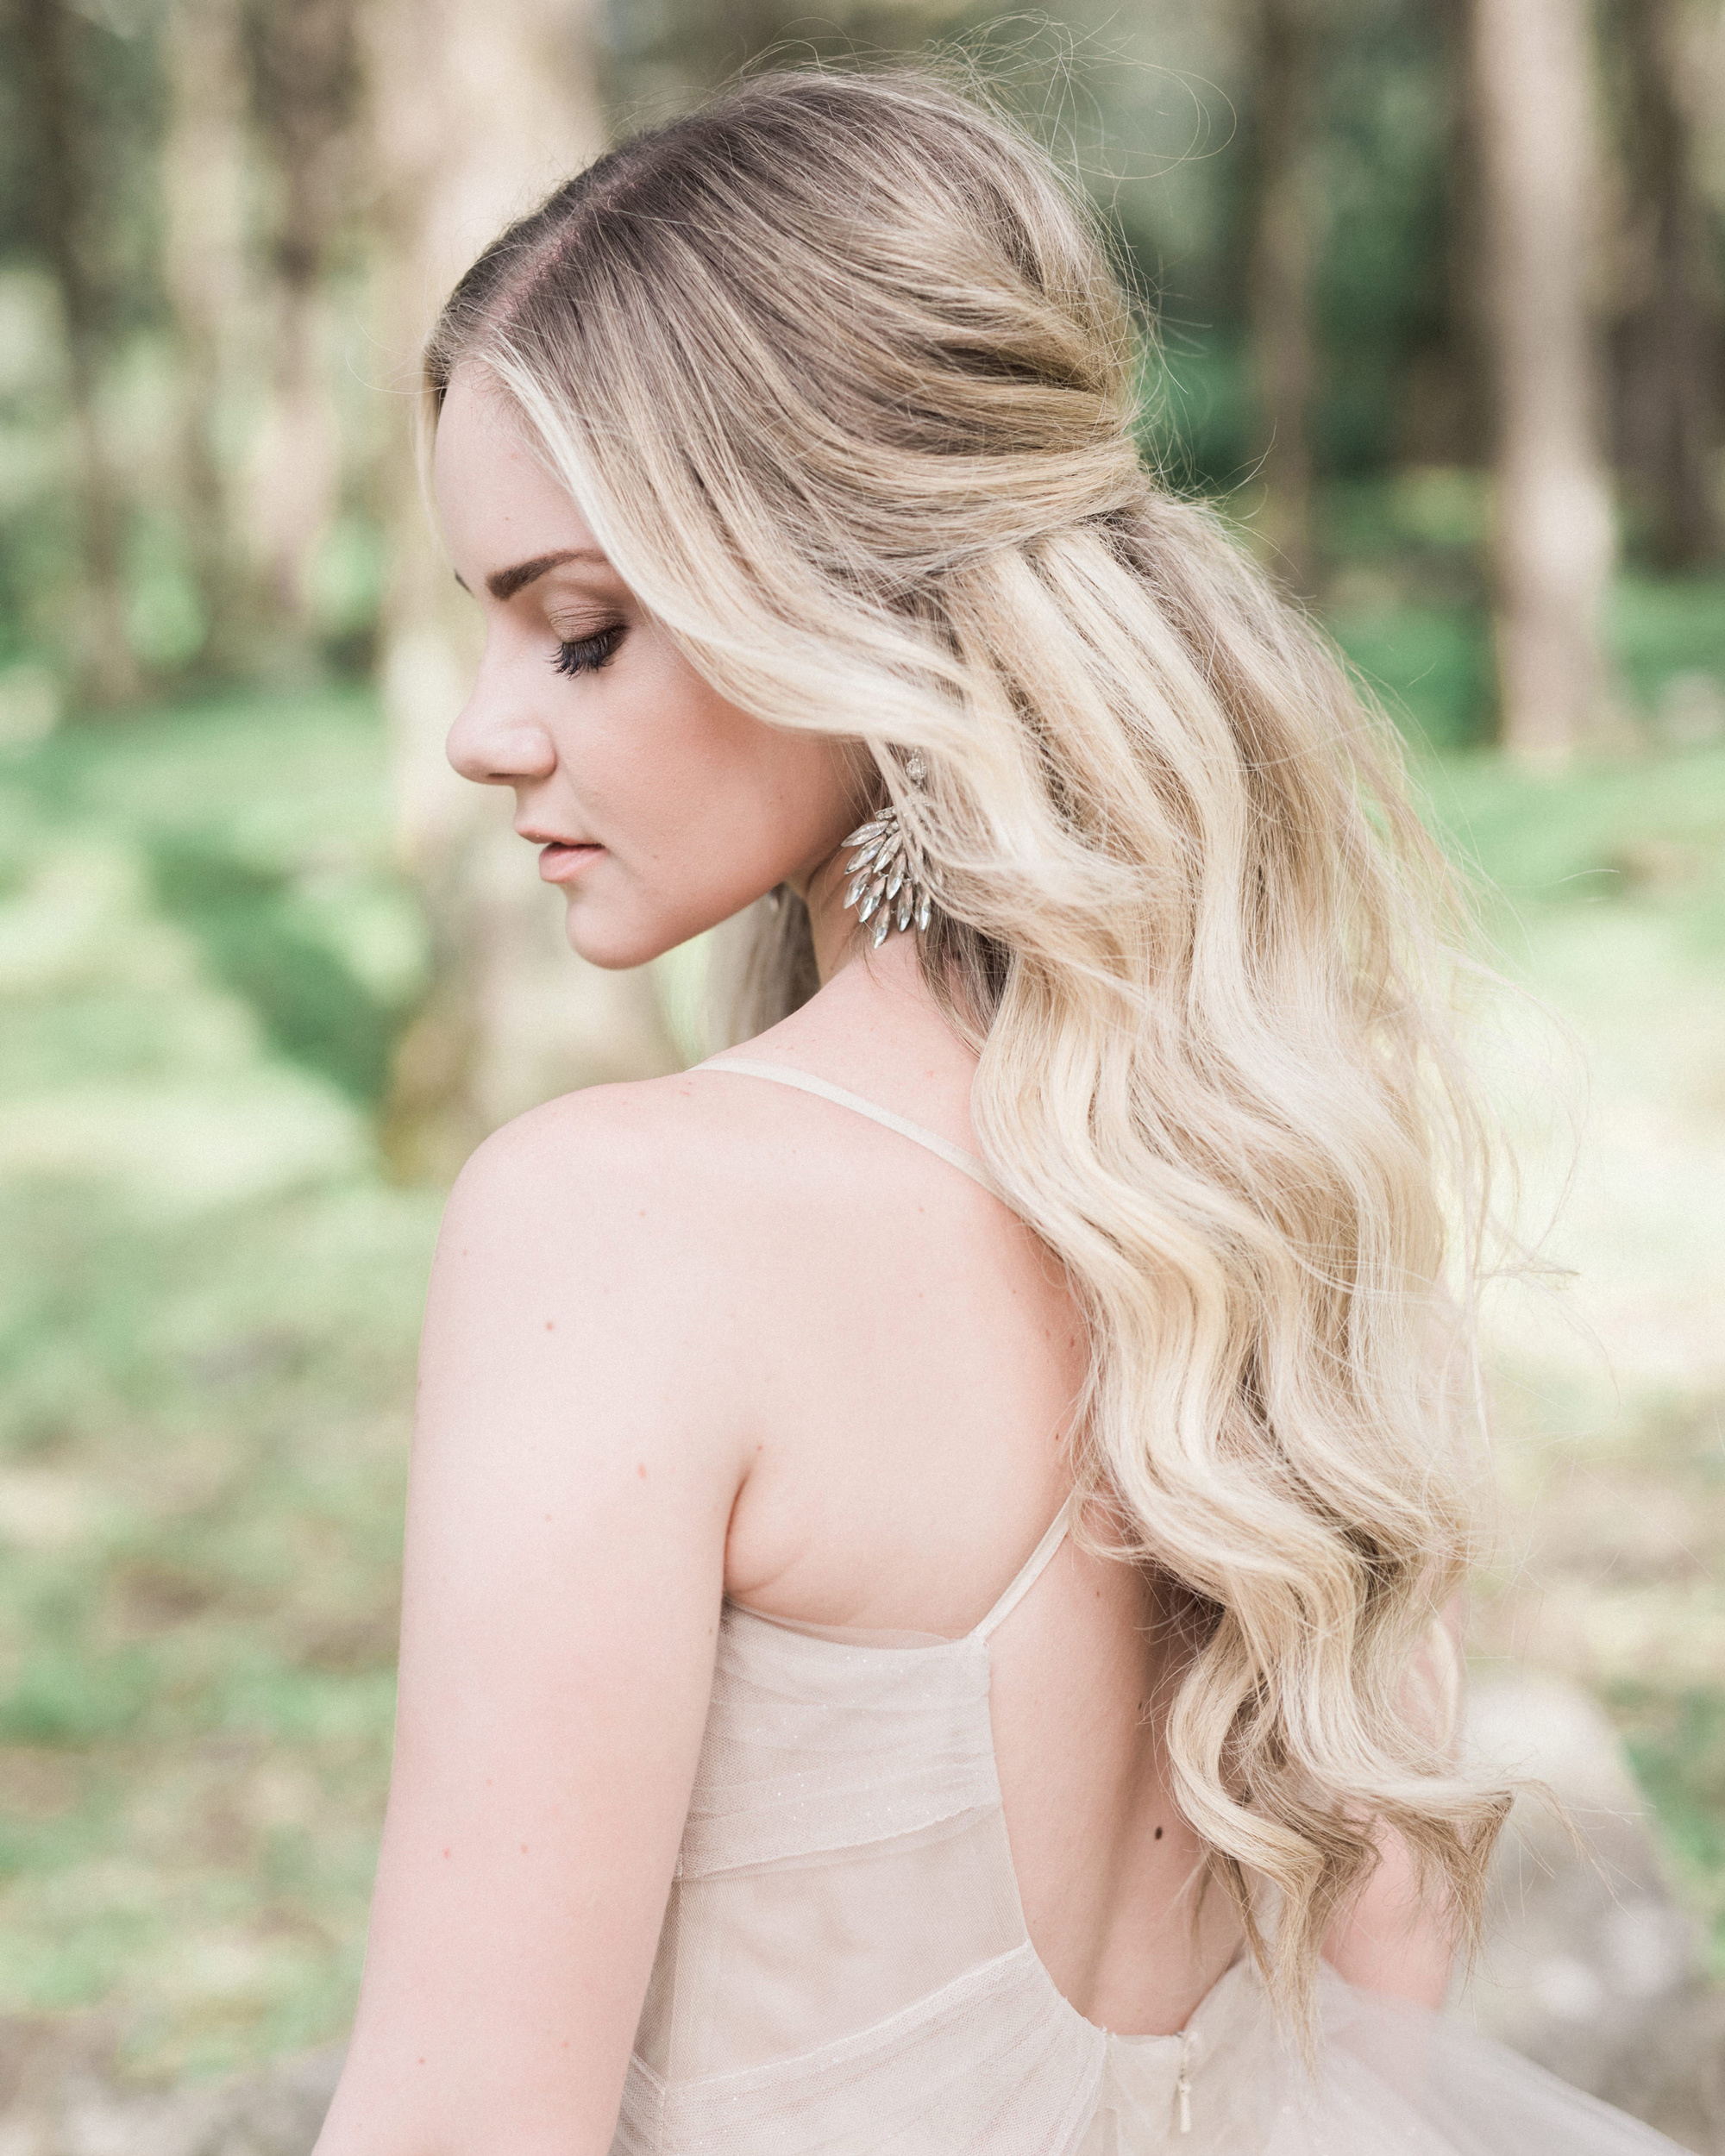 Wedding Styles: Half-Up, Half-Down Wedding Hairstyles We Love